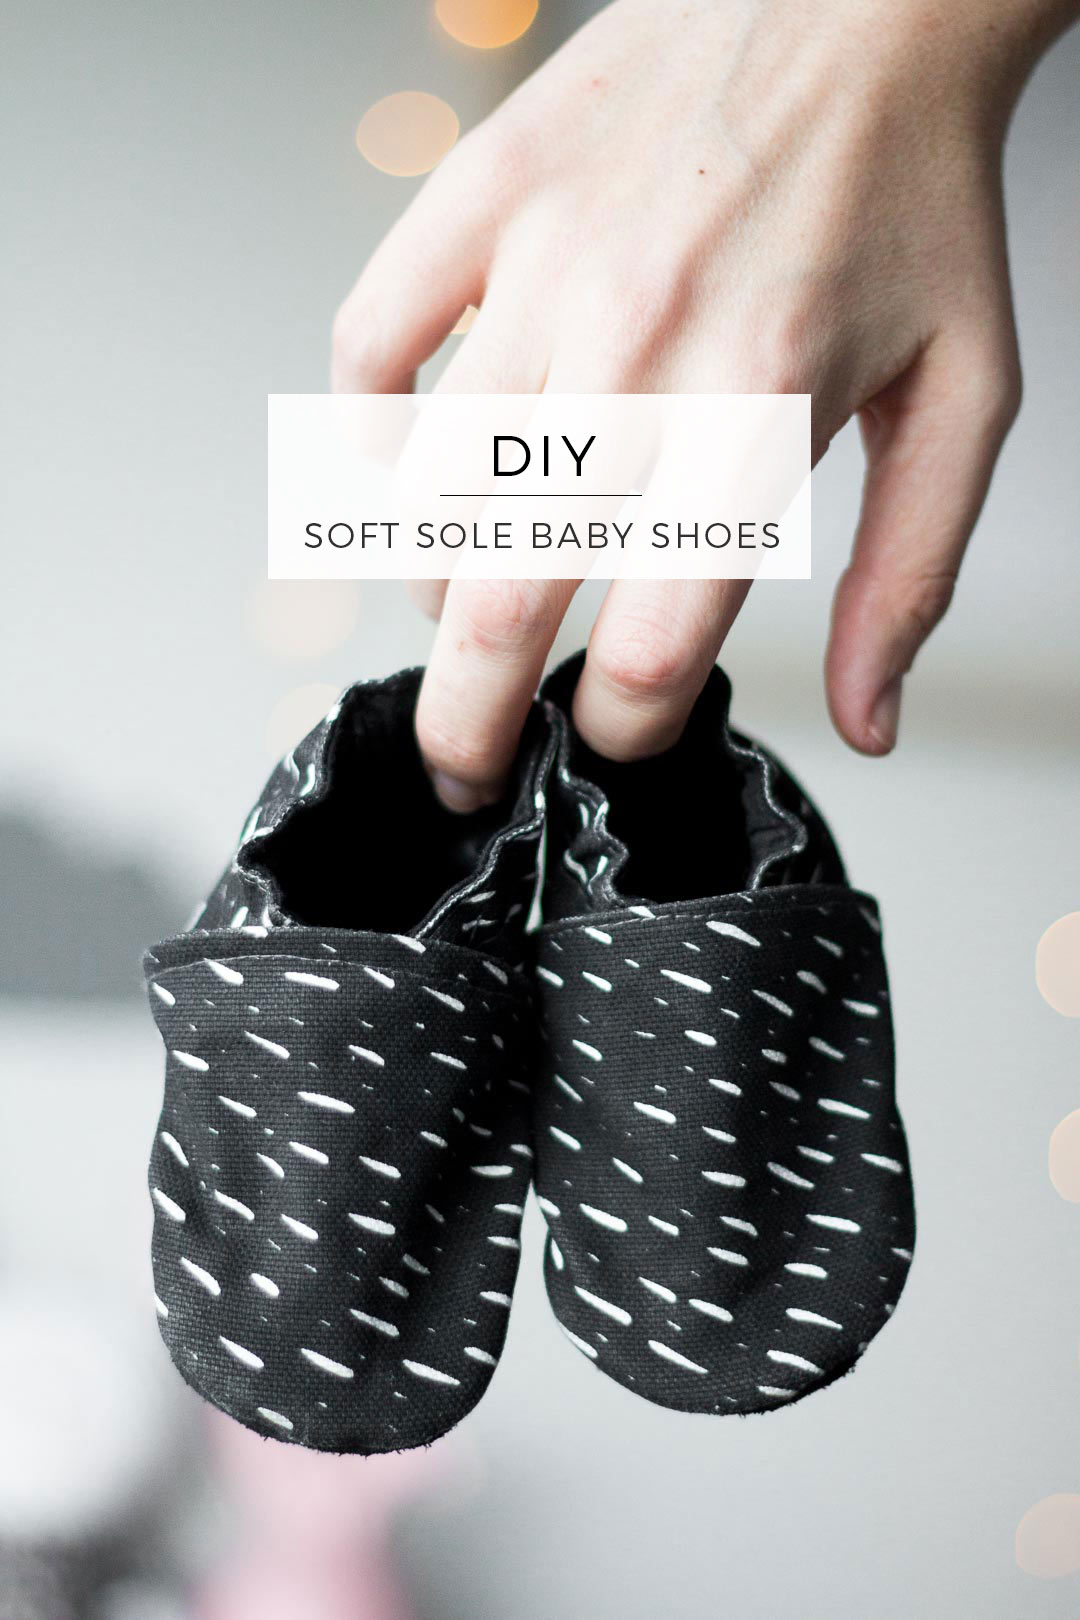 Soft Sole Baby Shoes DIY // Tutorial for handmade toddler shoes // Leather soles and your own choice of fabric